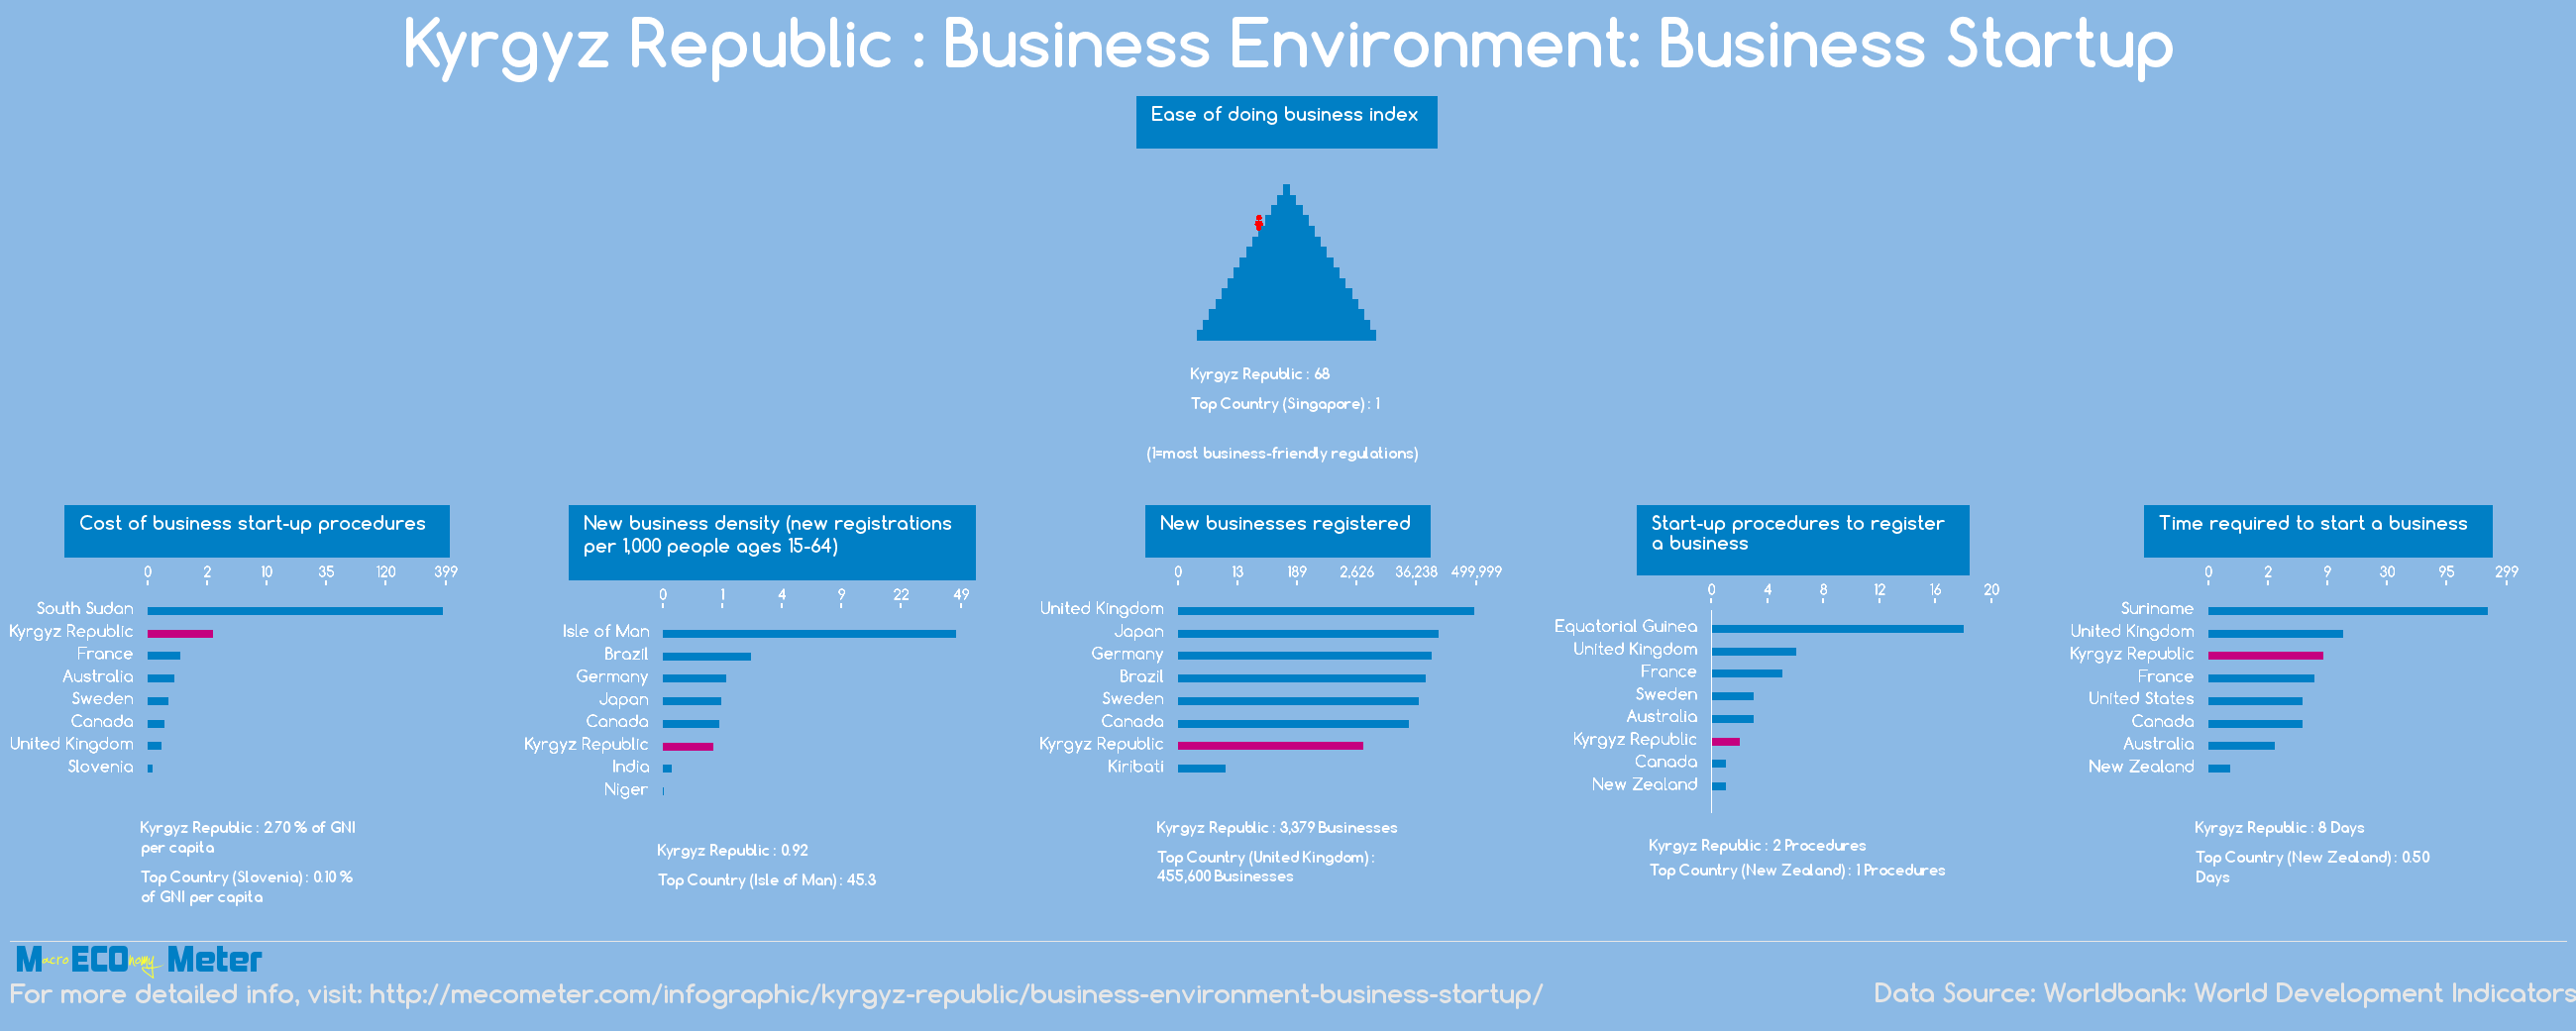 Kyrgyz Republic : Business Environment: Business Startup